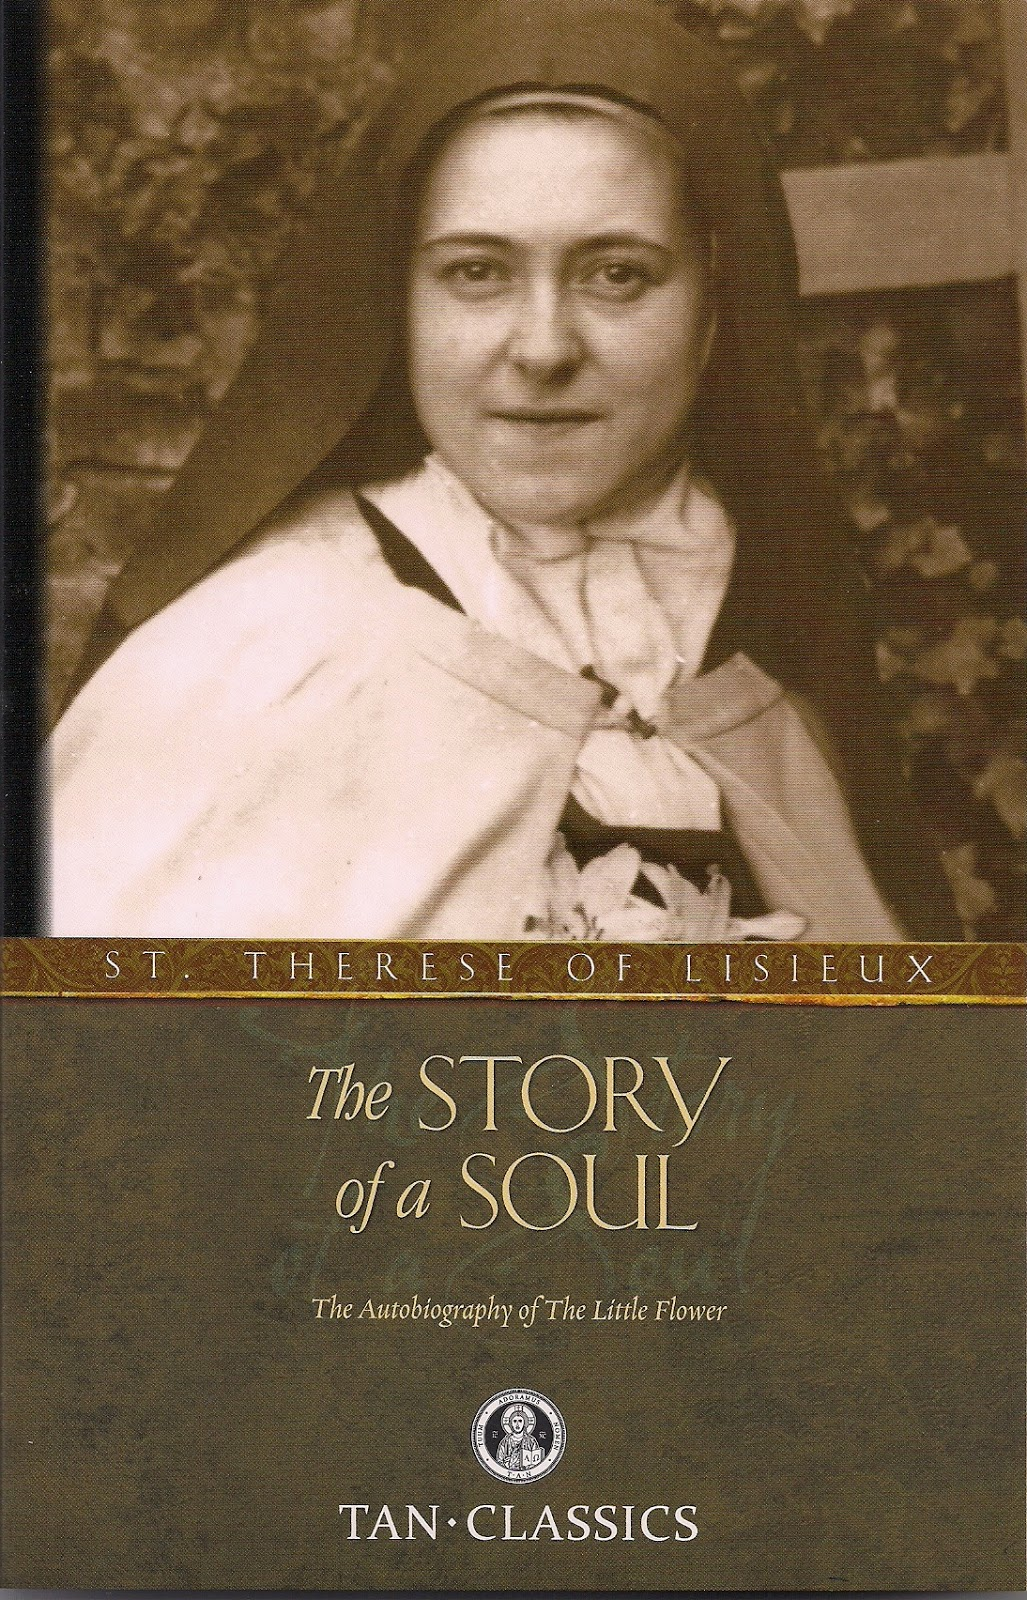 st therese of lisieux the story of a soul pdf